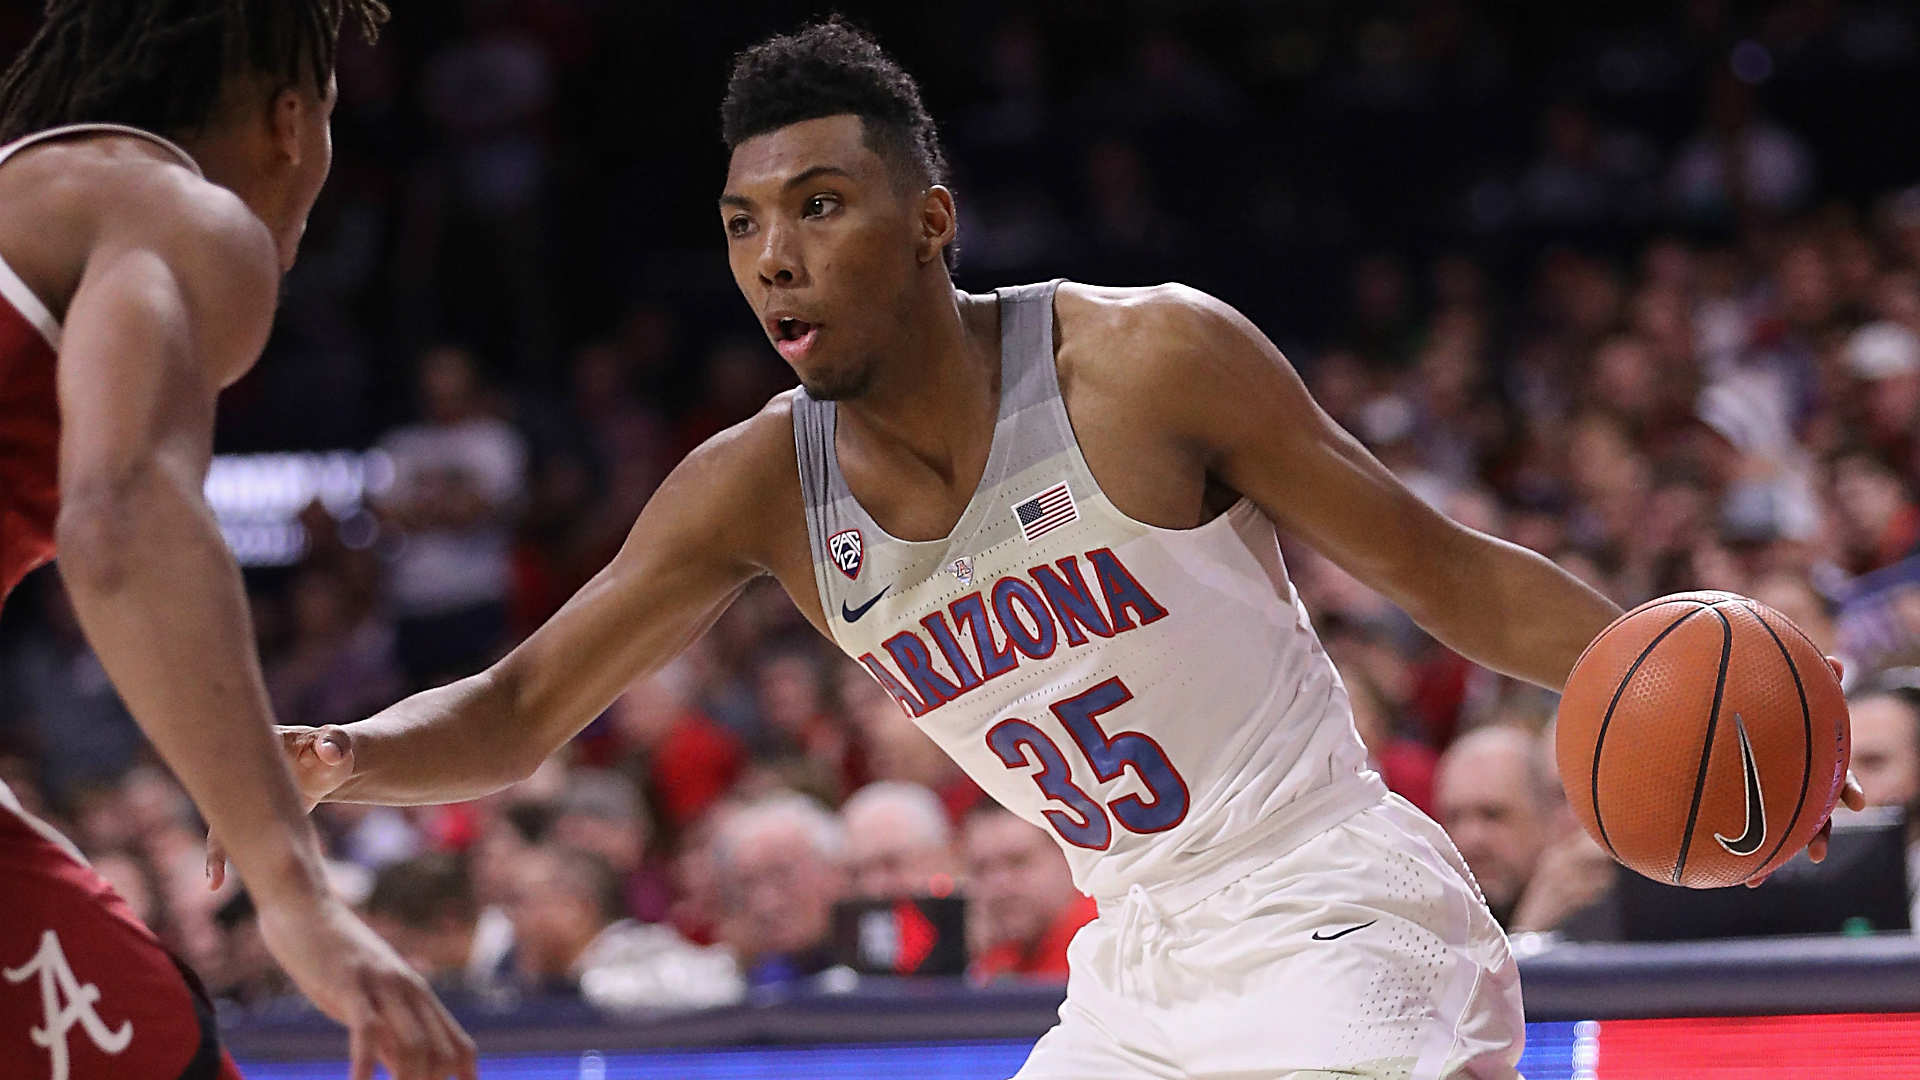 NCAA deems Arizona junior Allonzo Trier ineligible after failed PEDs test